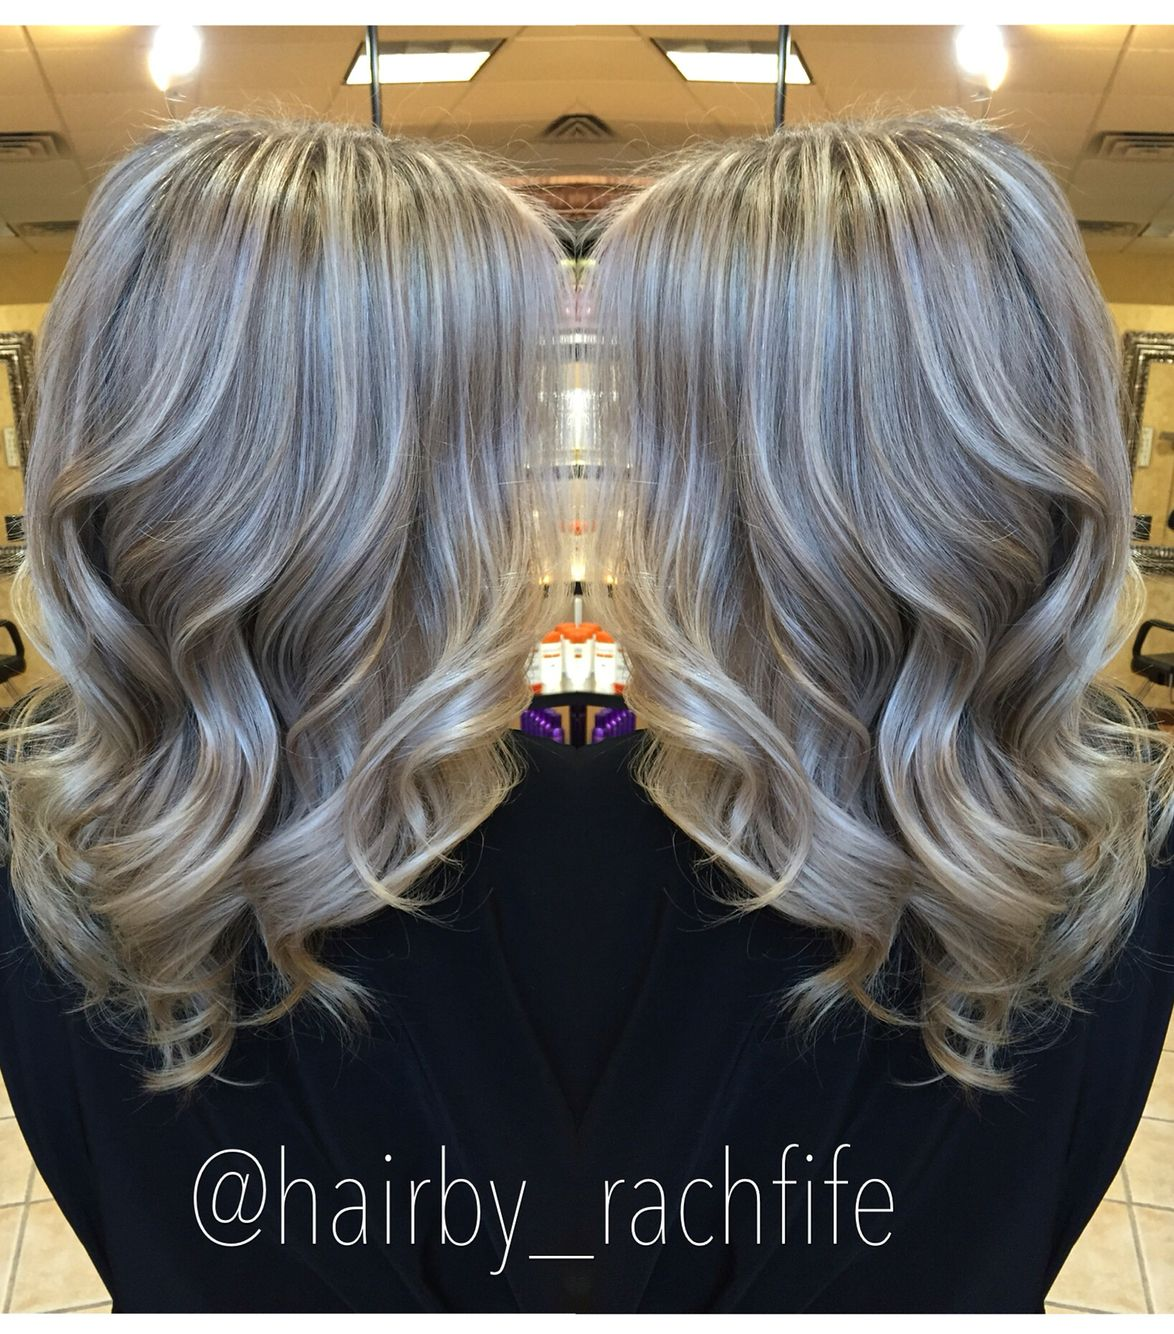 Icy ashy blonde balayage   Hair by Rachel Fife @ Sara Fraraccio Salon in Akron, Ohio